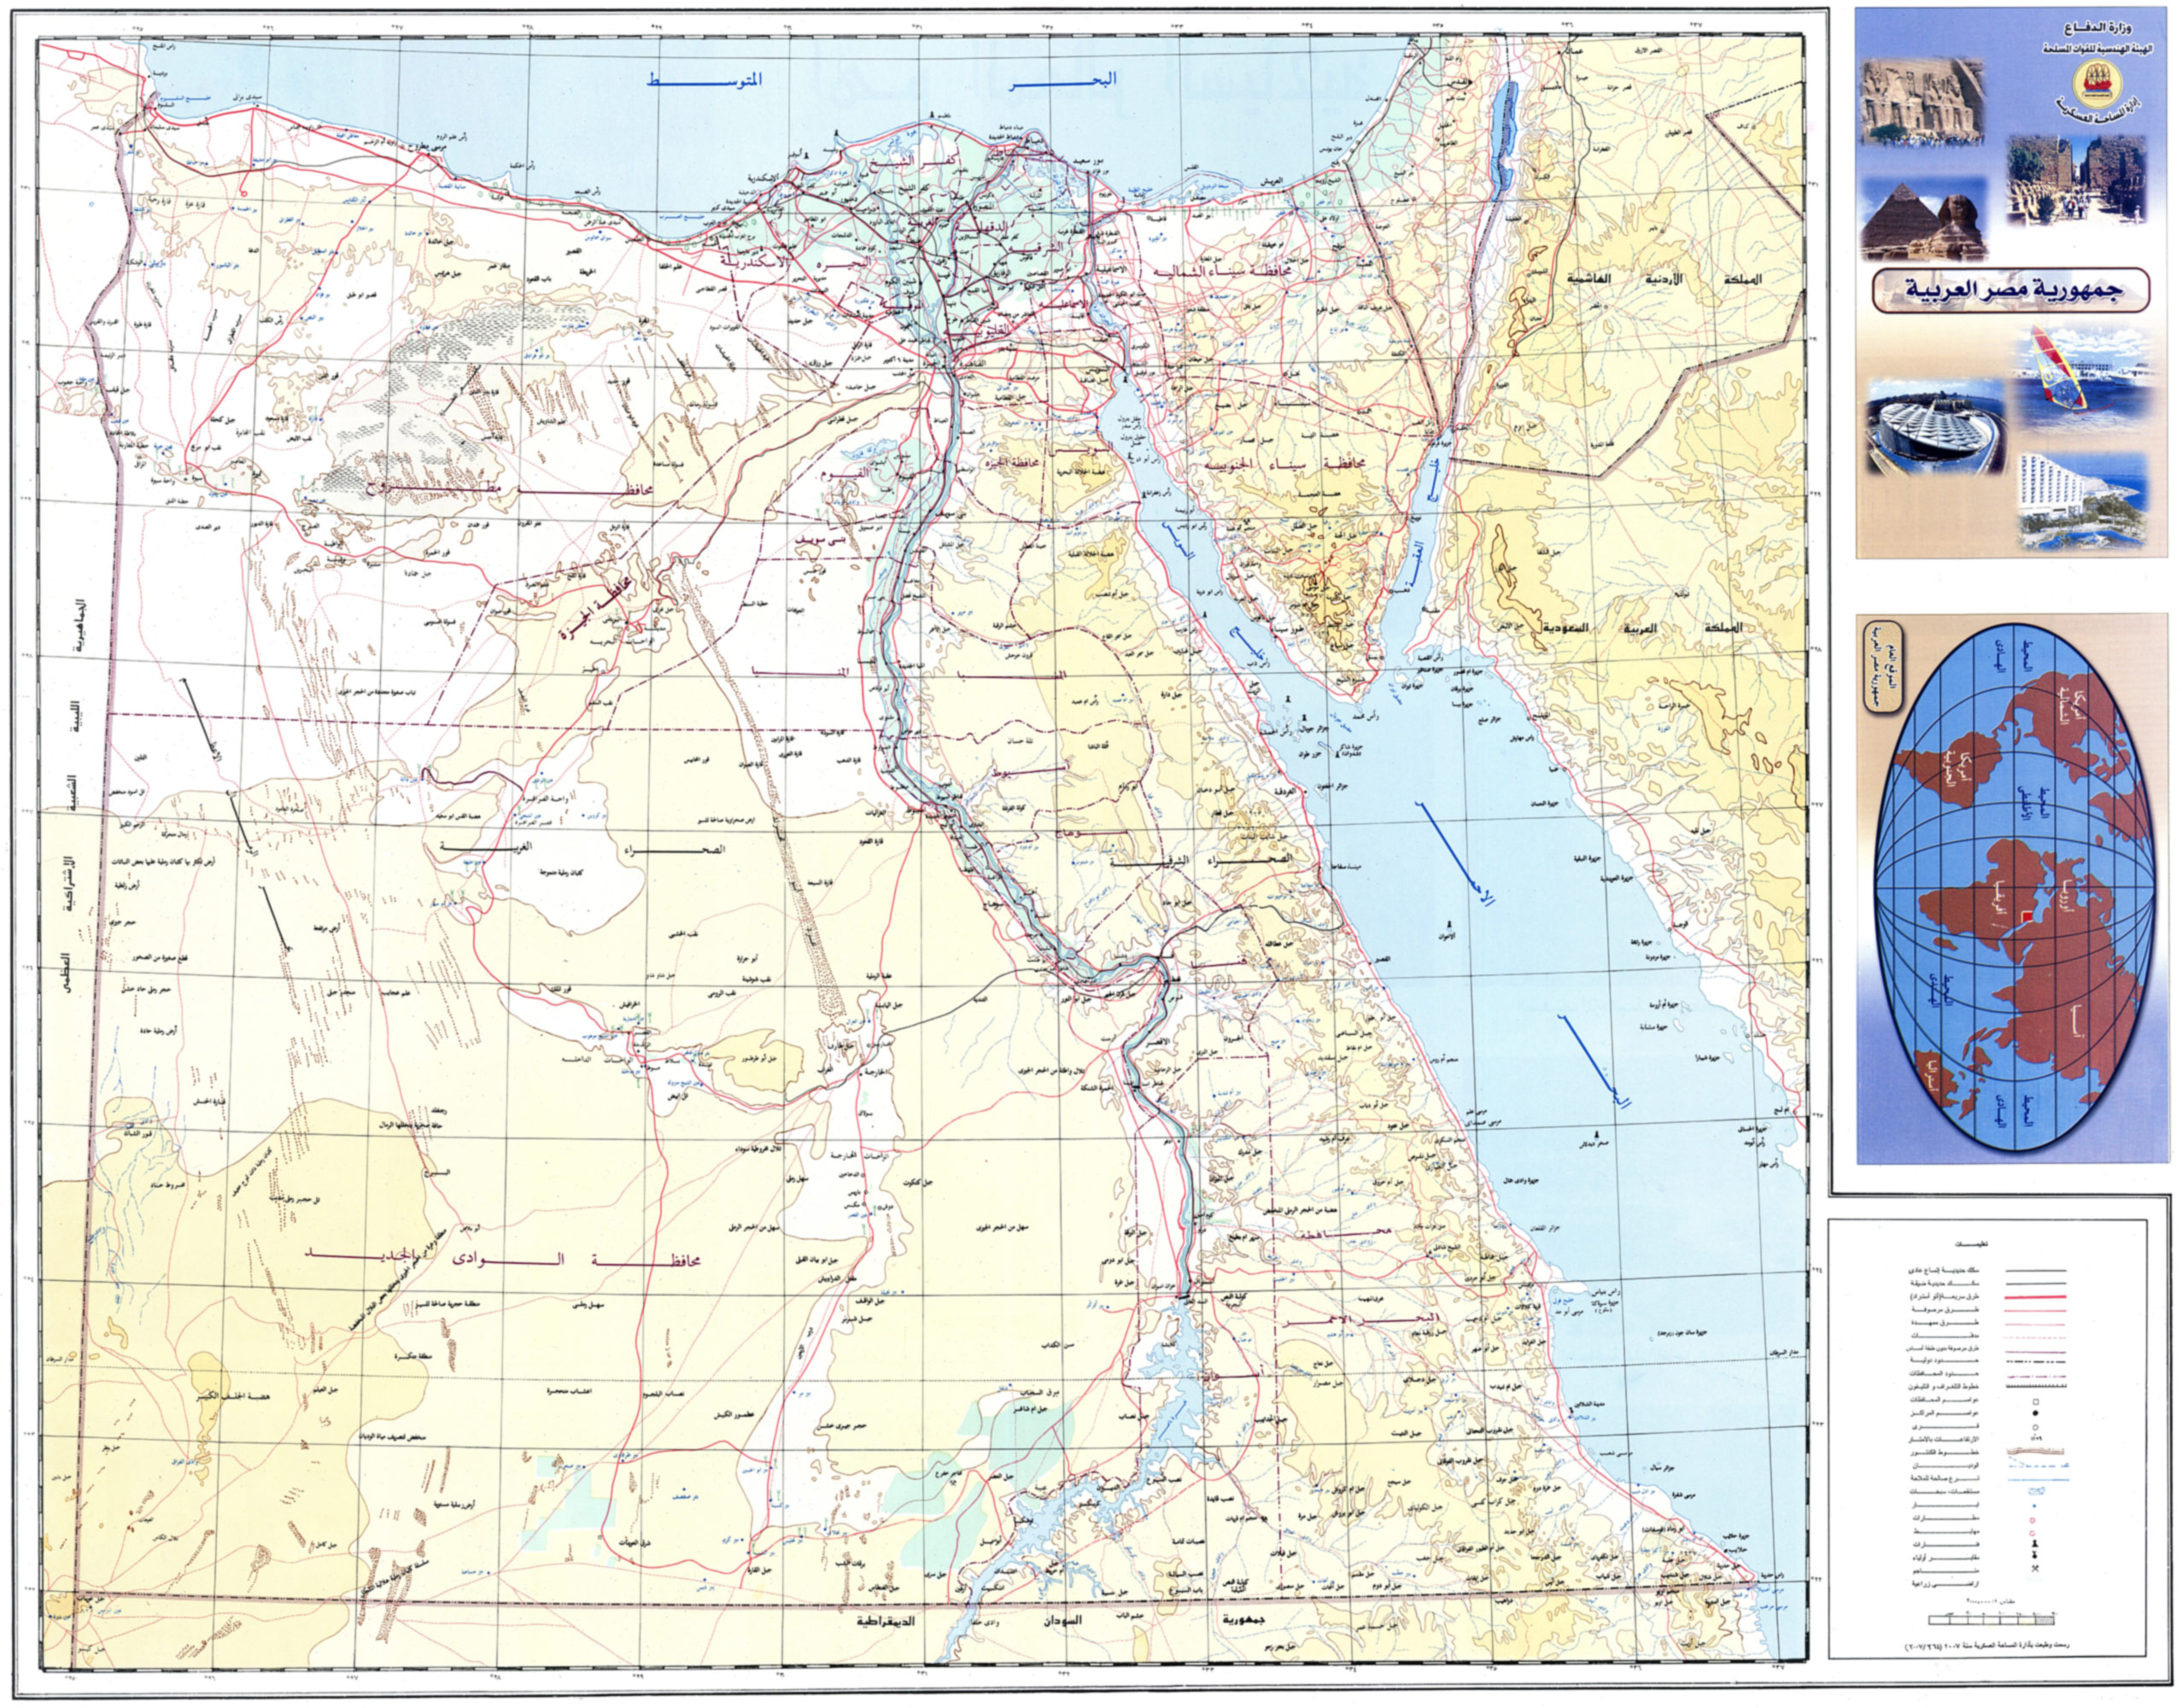 Where Is Egypt Arab Republic Of Egypt Maps Mapsofnet - Map of egypt 2000 bc